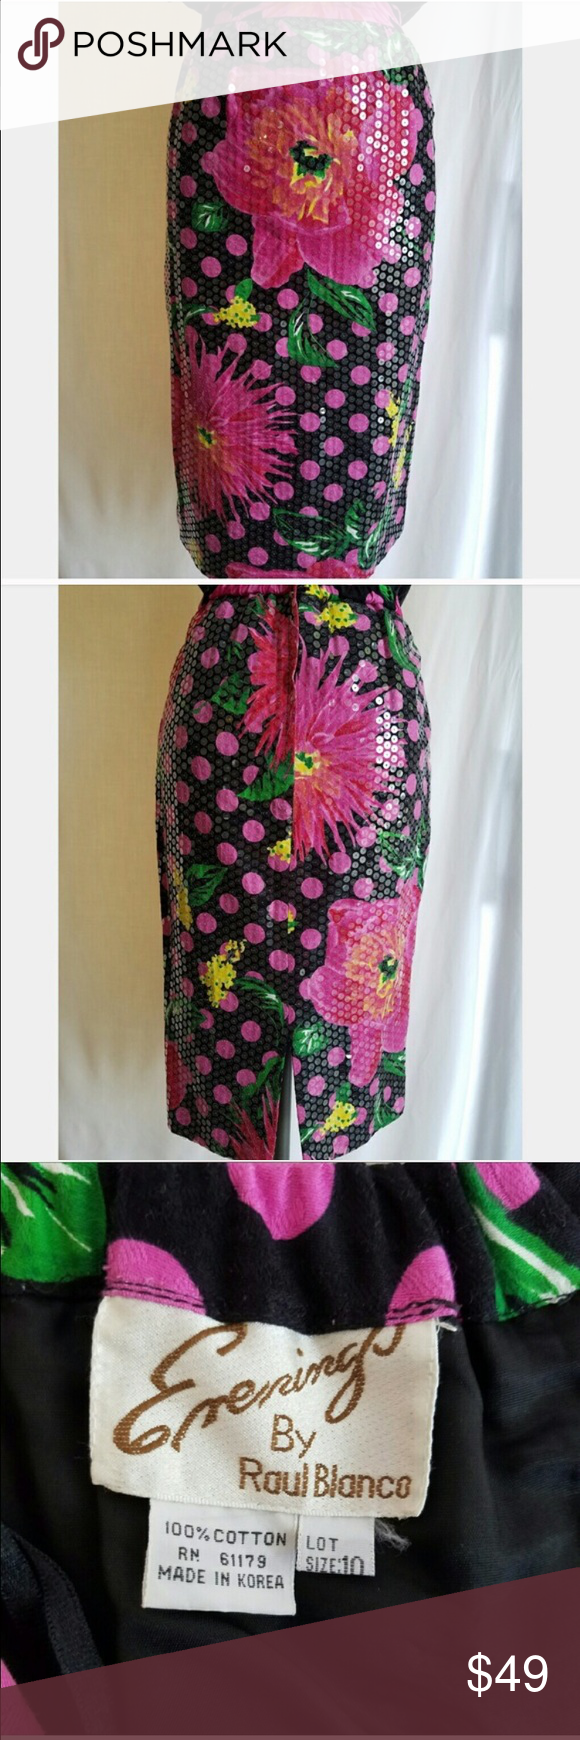 Vintage pink and black floral sequin pencil skirt Awesome condition!  Marked size 10 but fits normal size 6. No stretch. Vintage pink and black floral sequin pencil skirt! Vintage Skirts Pencil